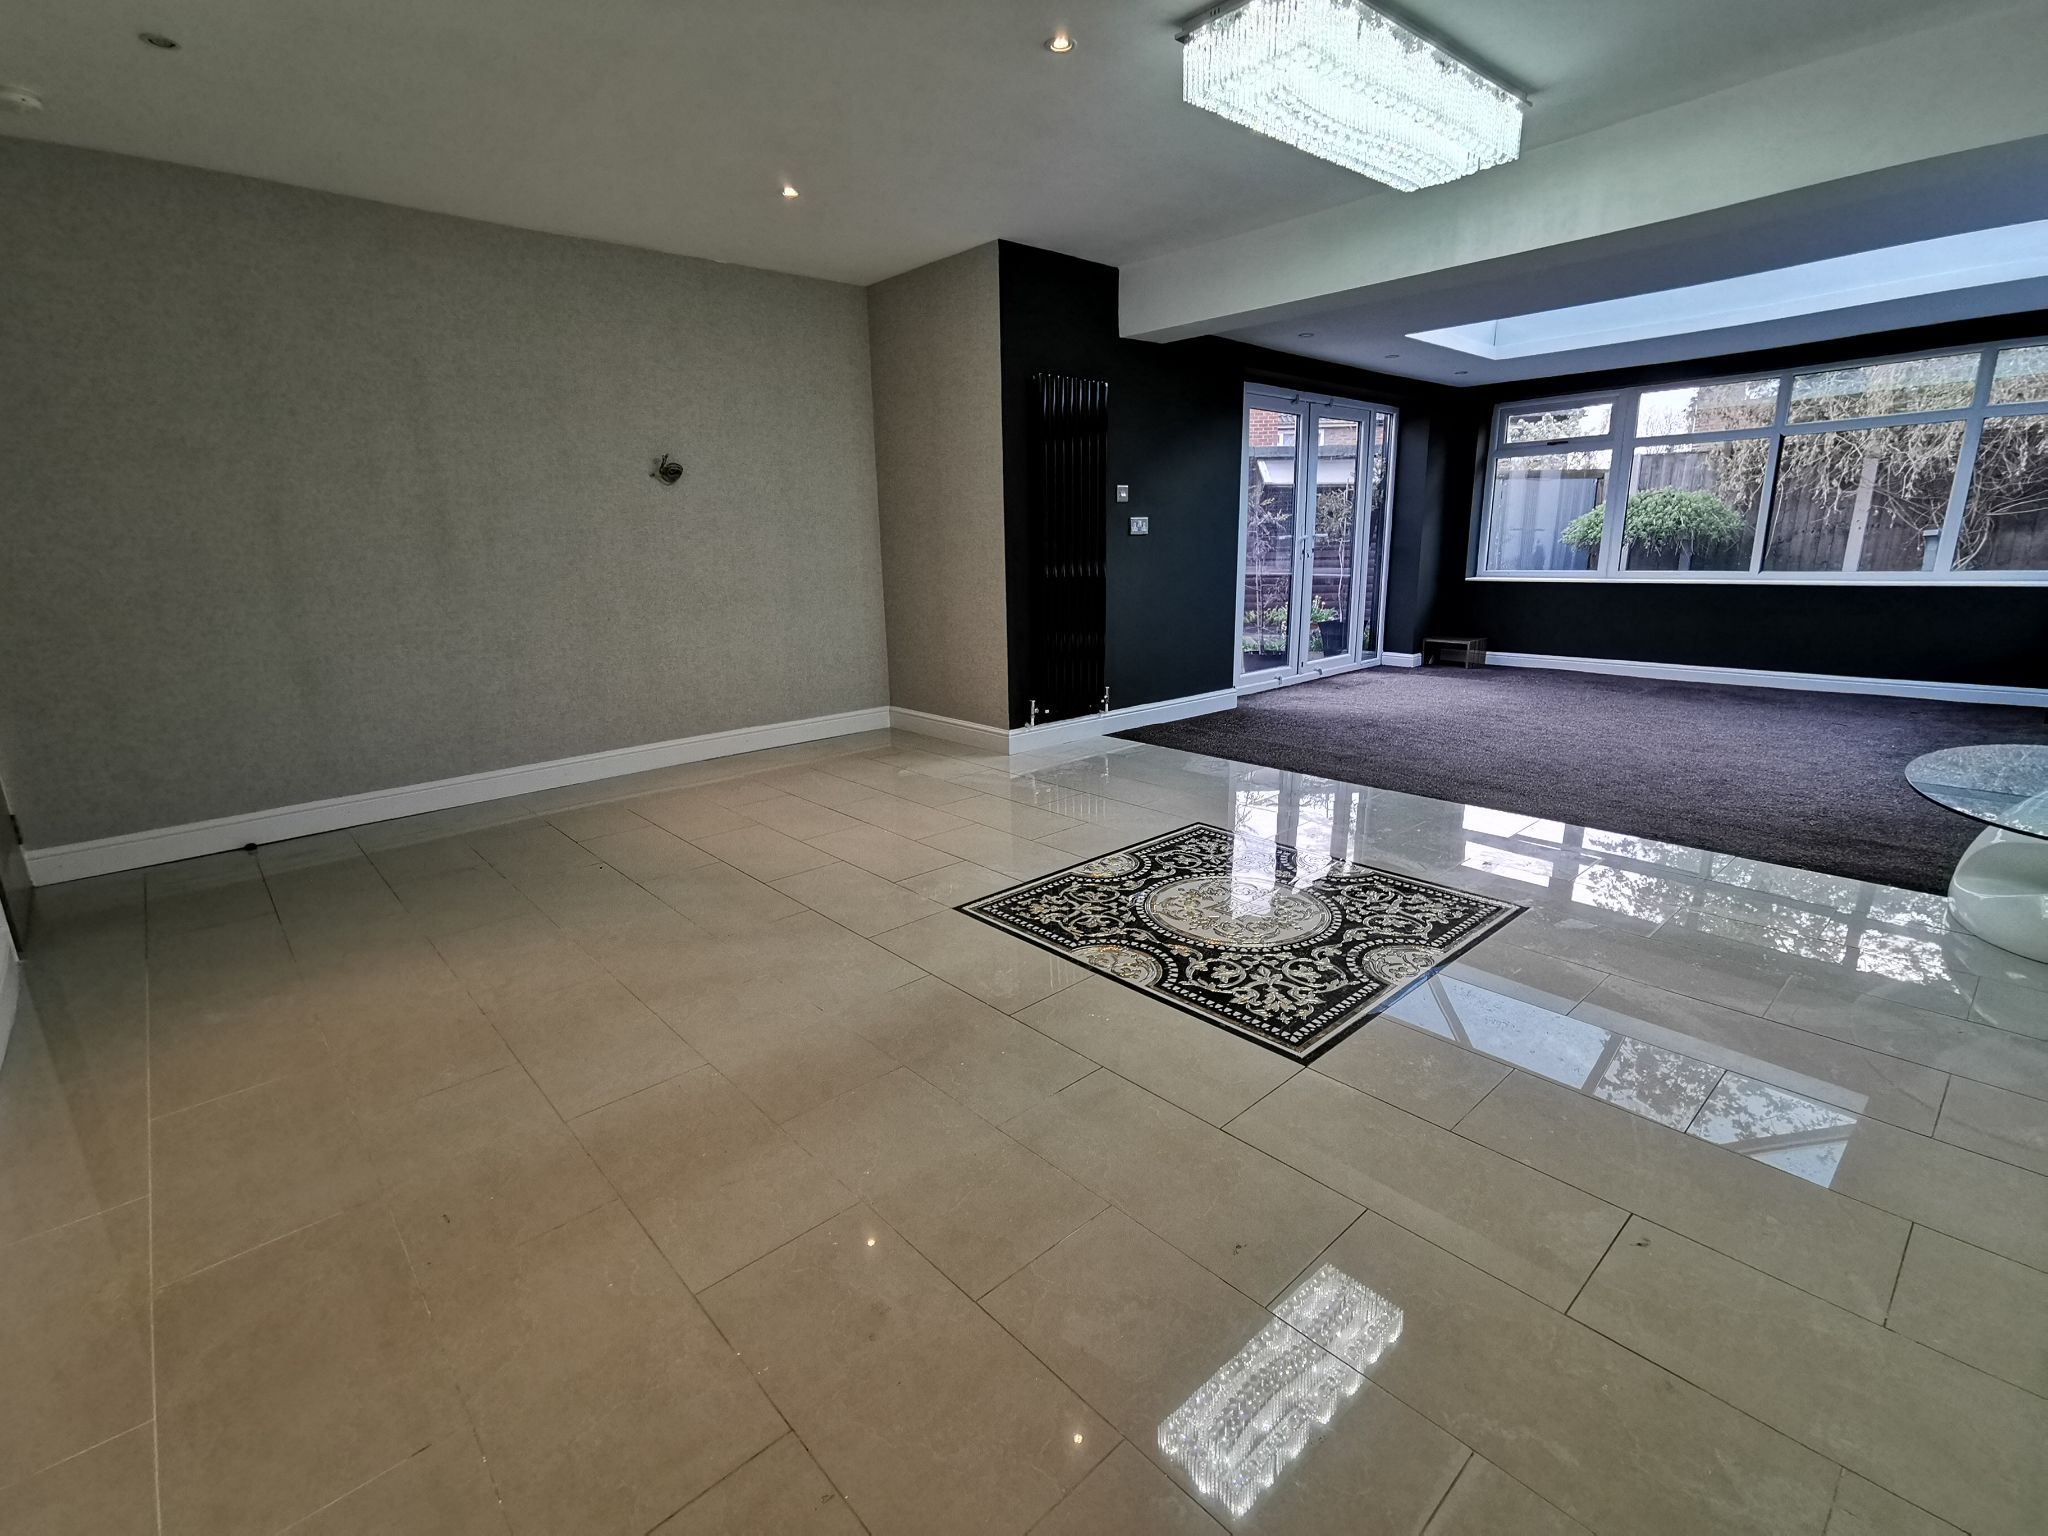 6 bedroom detached bungalow For Sale in Bradford - Photograph 3.